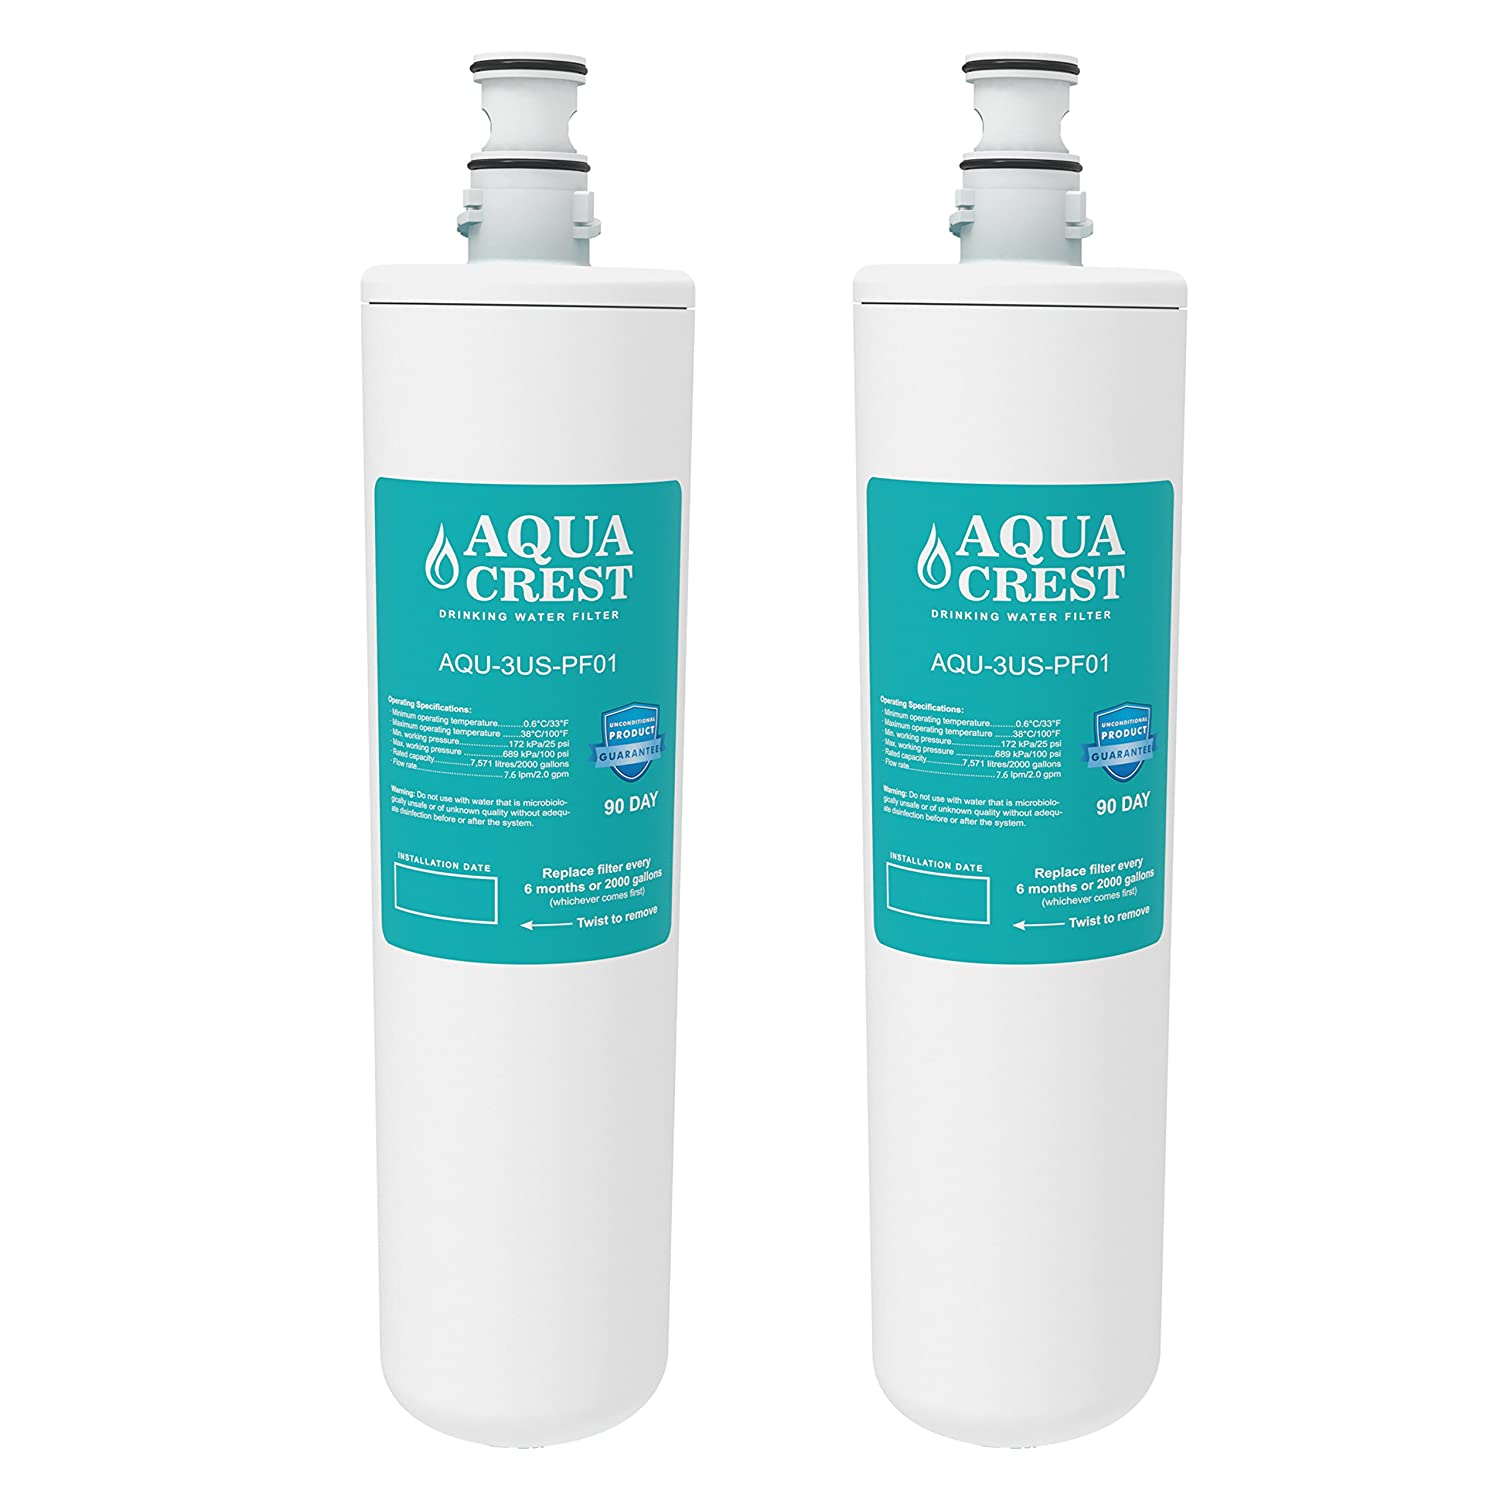 Aquacrest adavanced water filter replacement for filtrete for Water feature filter system